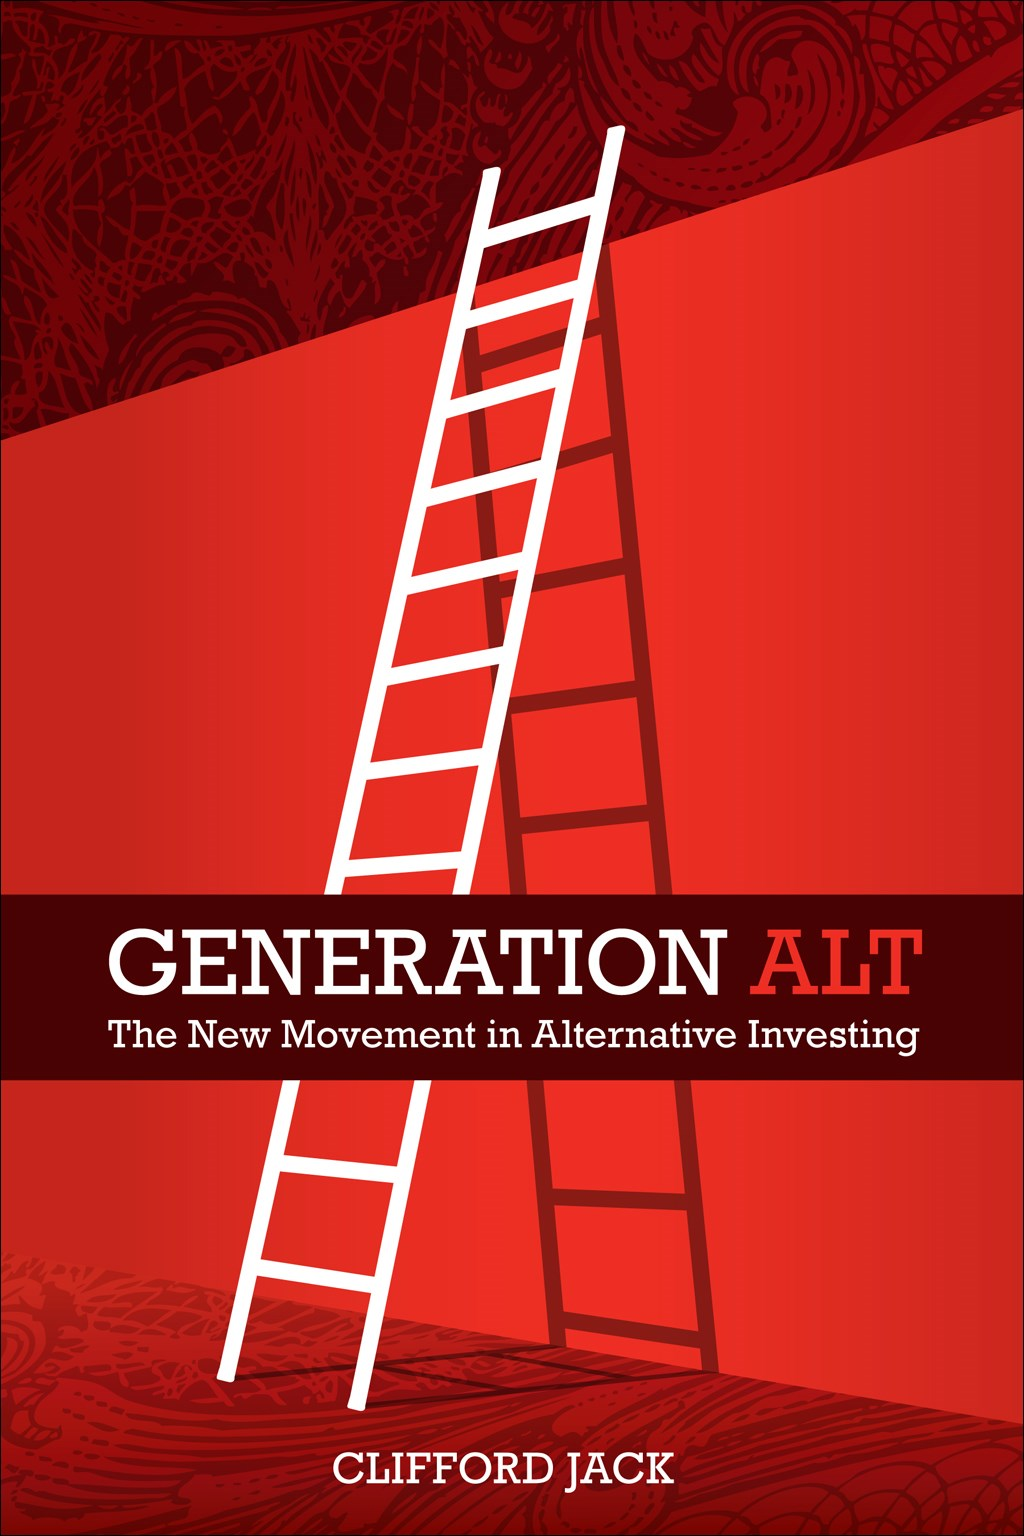 Generation Alt: The New Movement in Alternative Investing